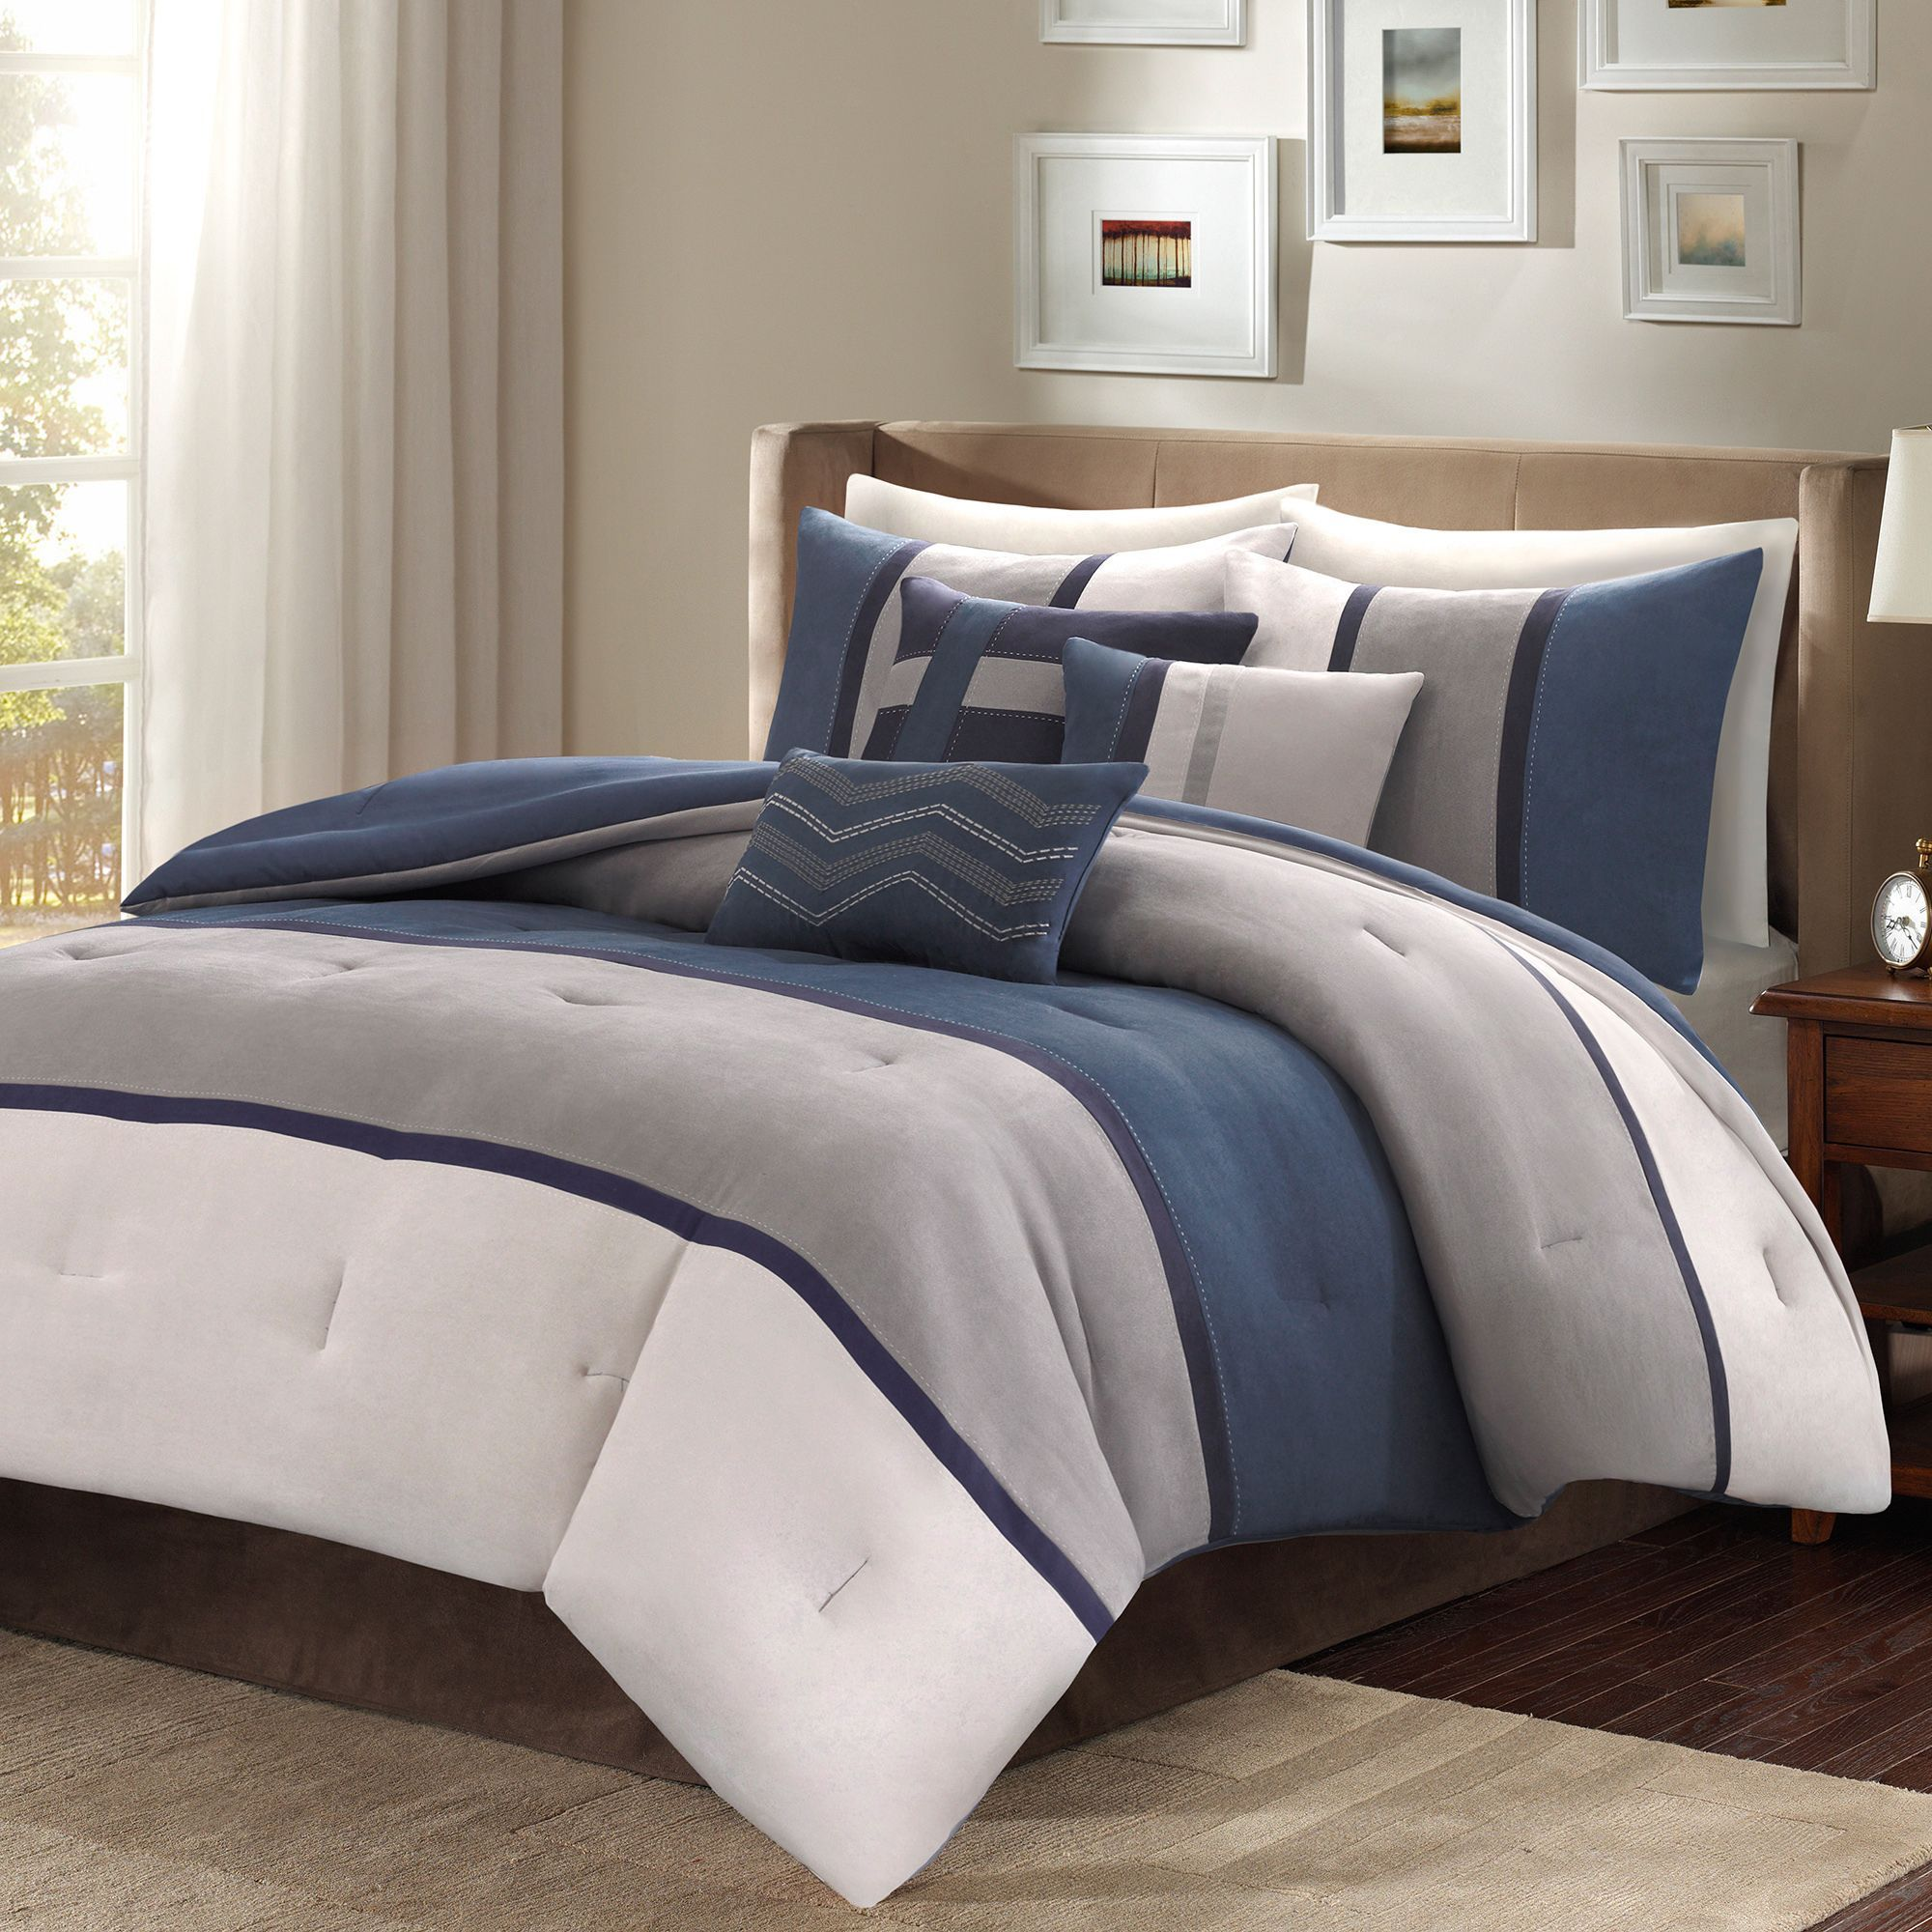 comforter white park madison set orders product com on bedding bath free overstock shipping bed isabella